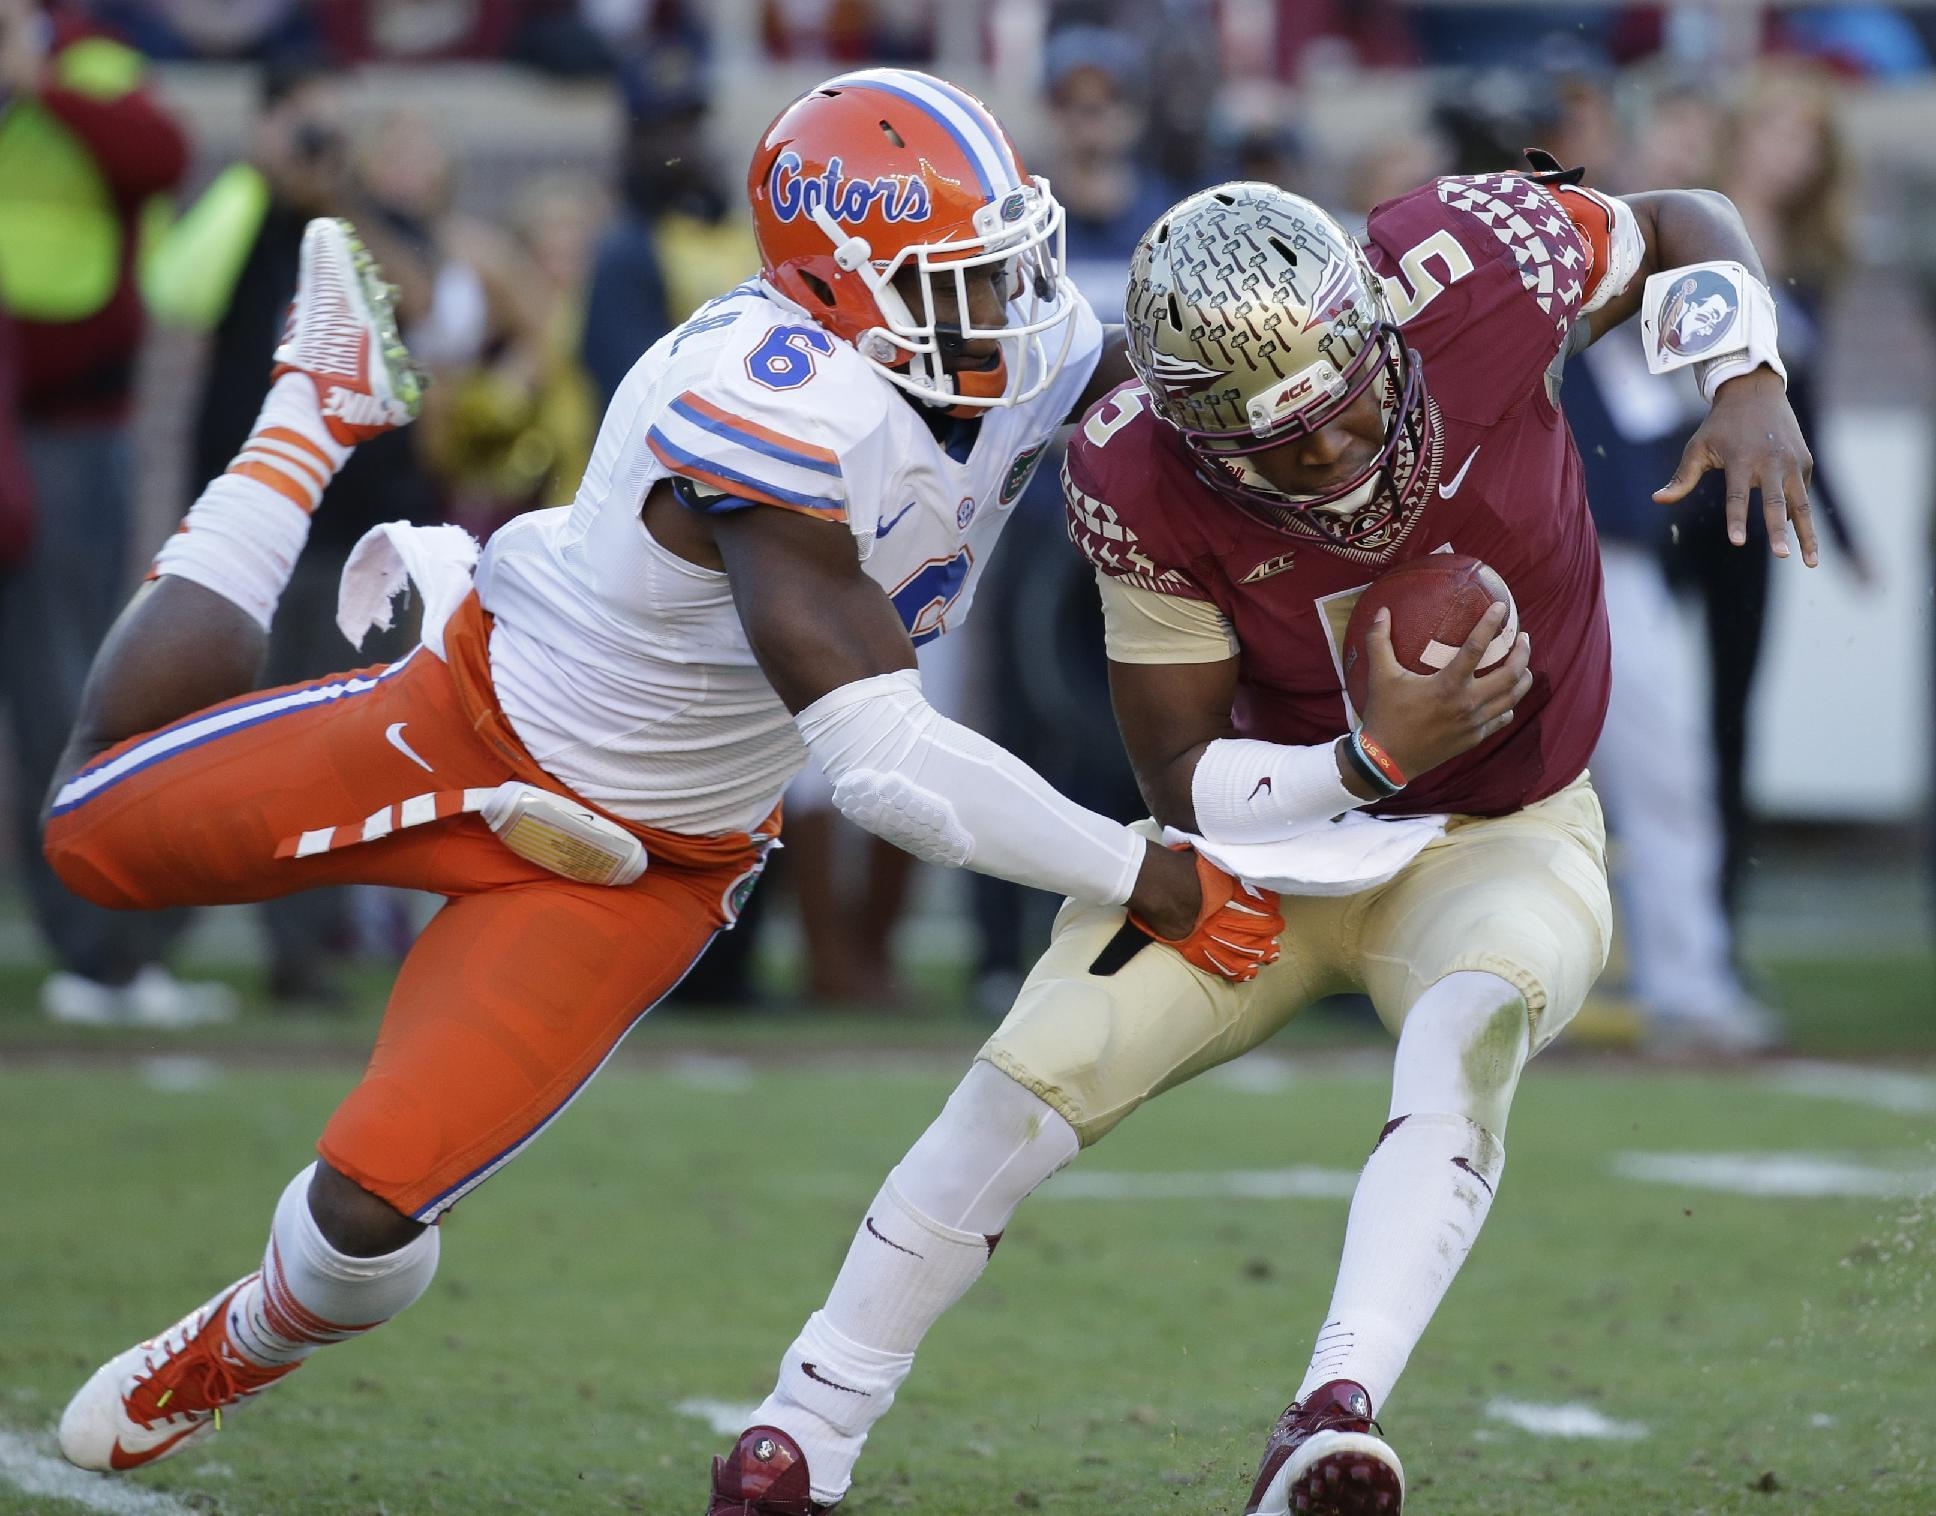 Dante Fowler Jr. thanks Florida fans in newspaper ad (Photo)